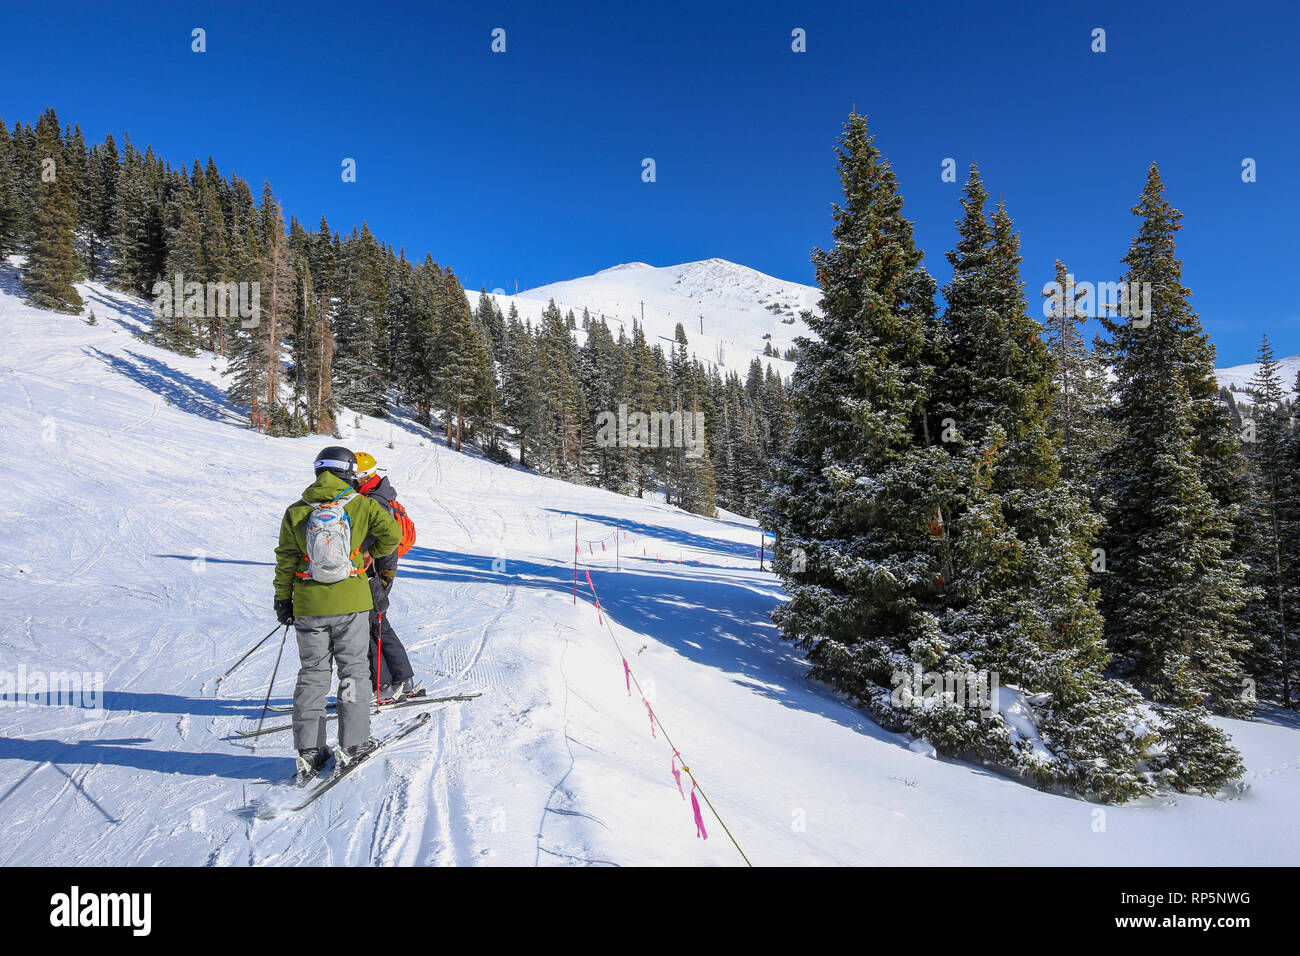 Two Skiers walking along the snow of the Colorado Rocky Mountains at Copper Mountain Ski Resort in winter - Stock Image